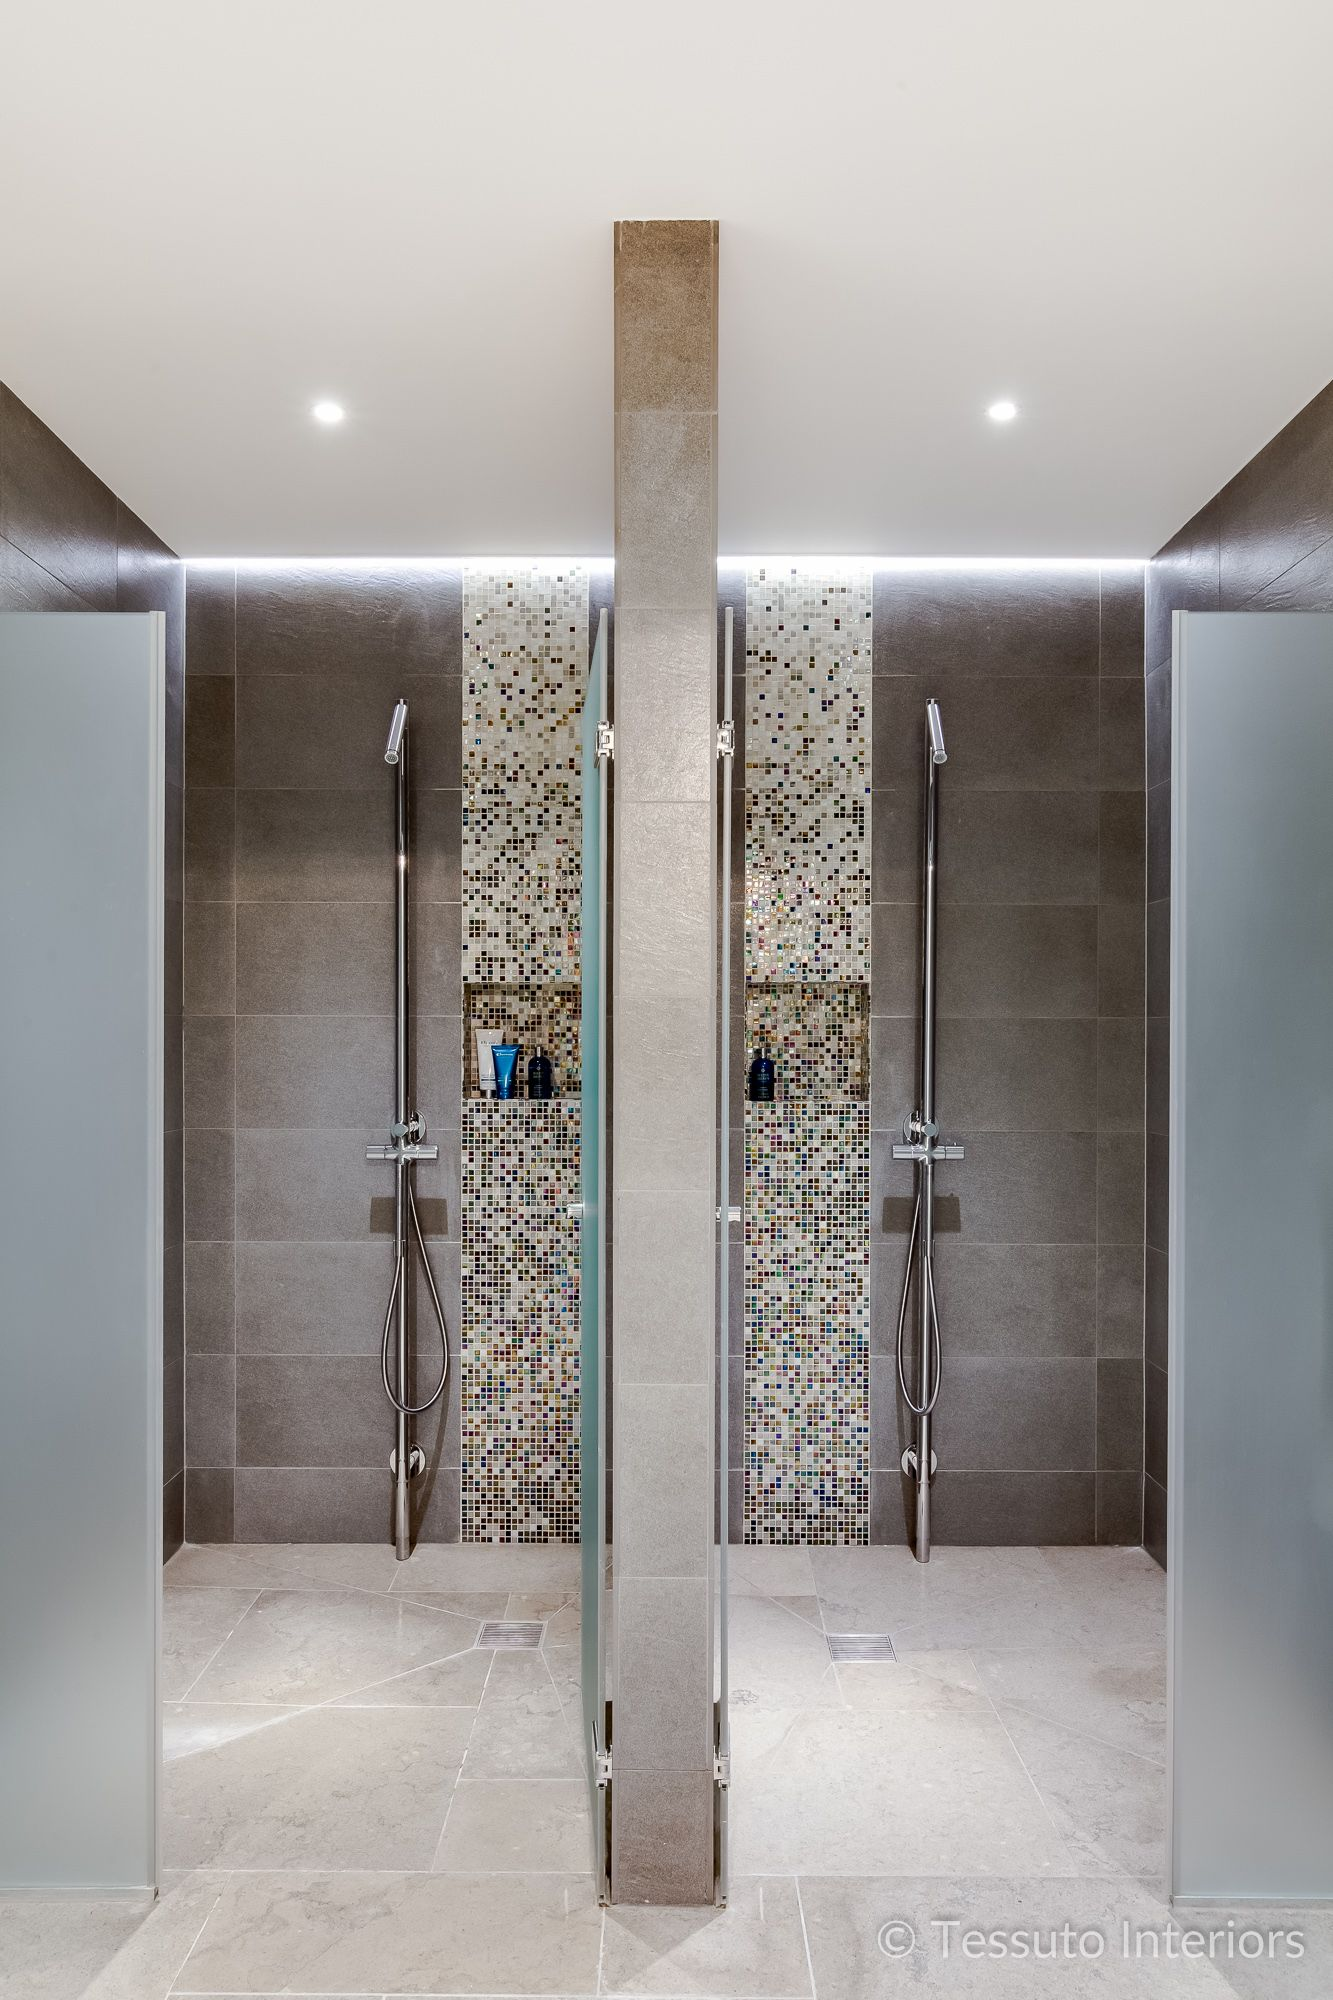 Tessuto Interiors Luxury Contemporary Swimming Pool Shower Room ...